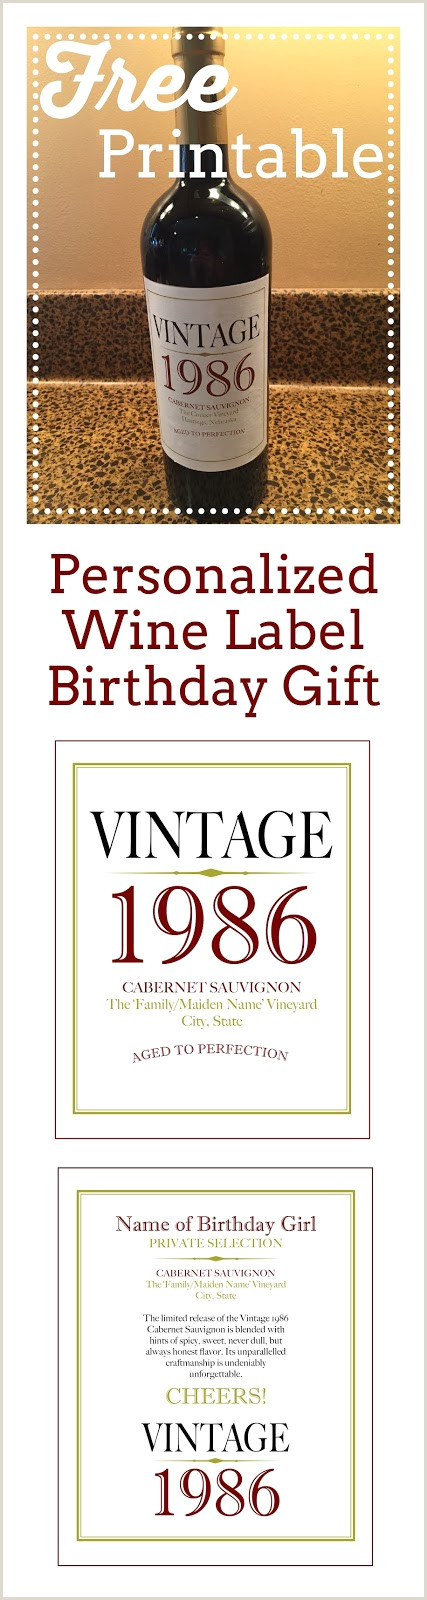 Birthday Wine Label Template Free Free Printable for Personalized Wine Label Birthday Gift